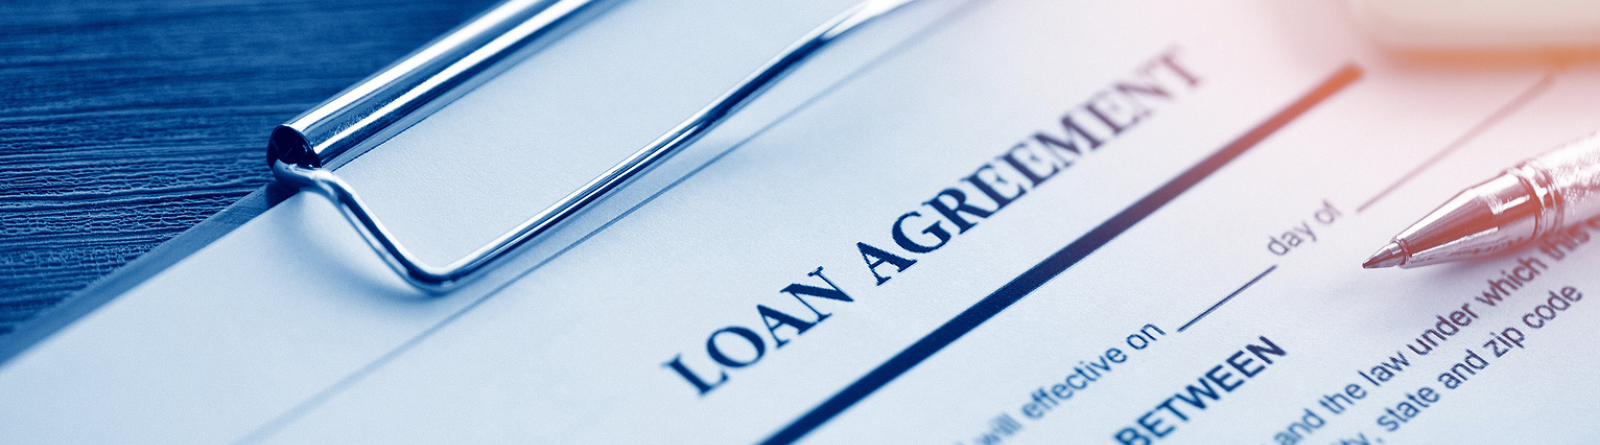 Loan agreement papers